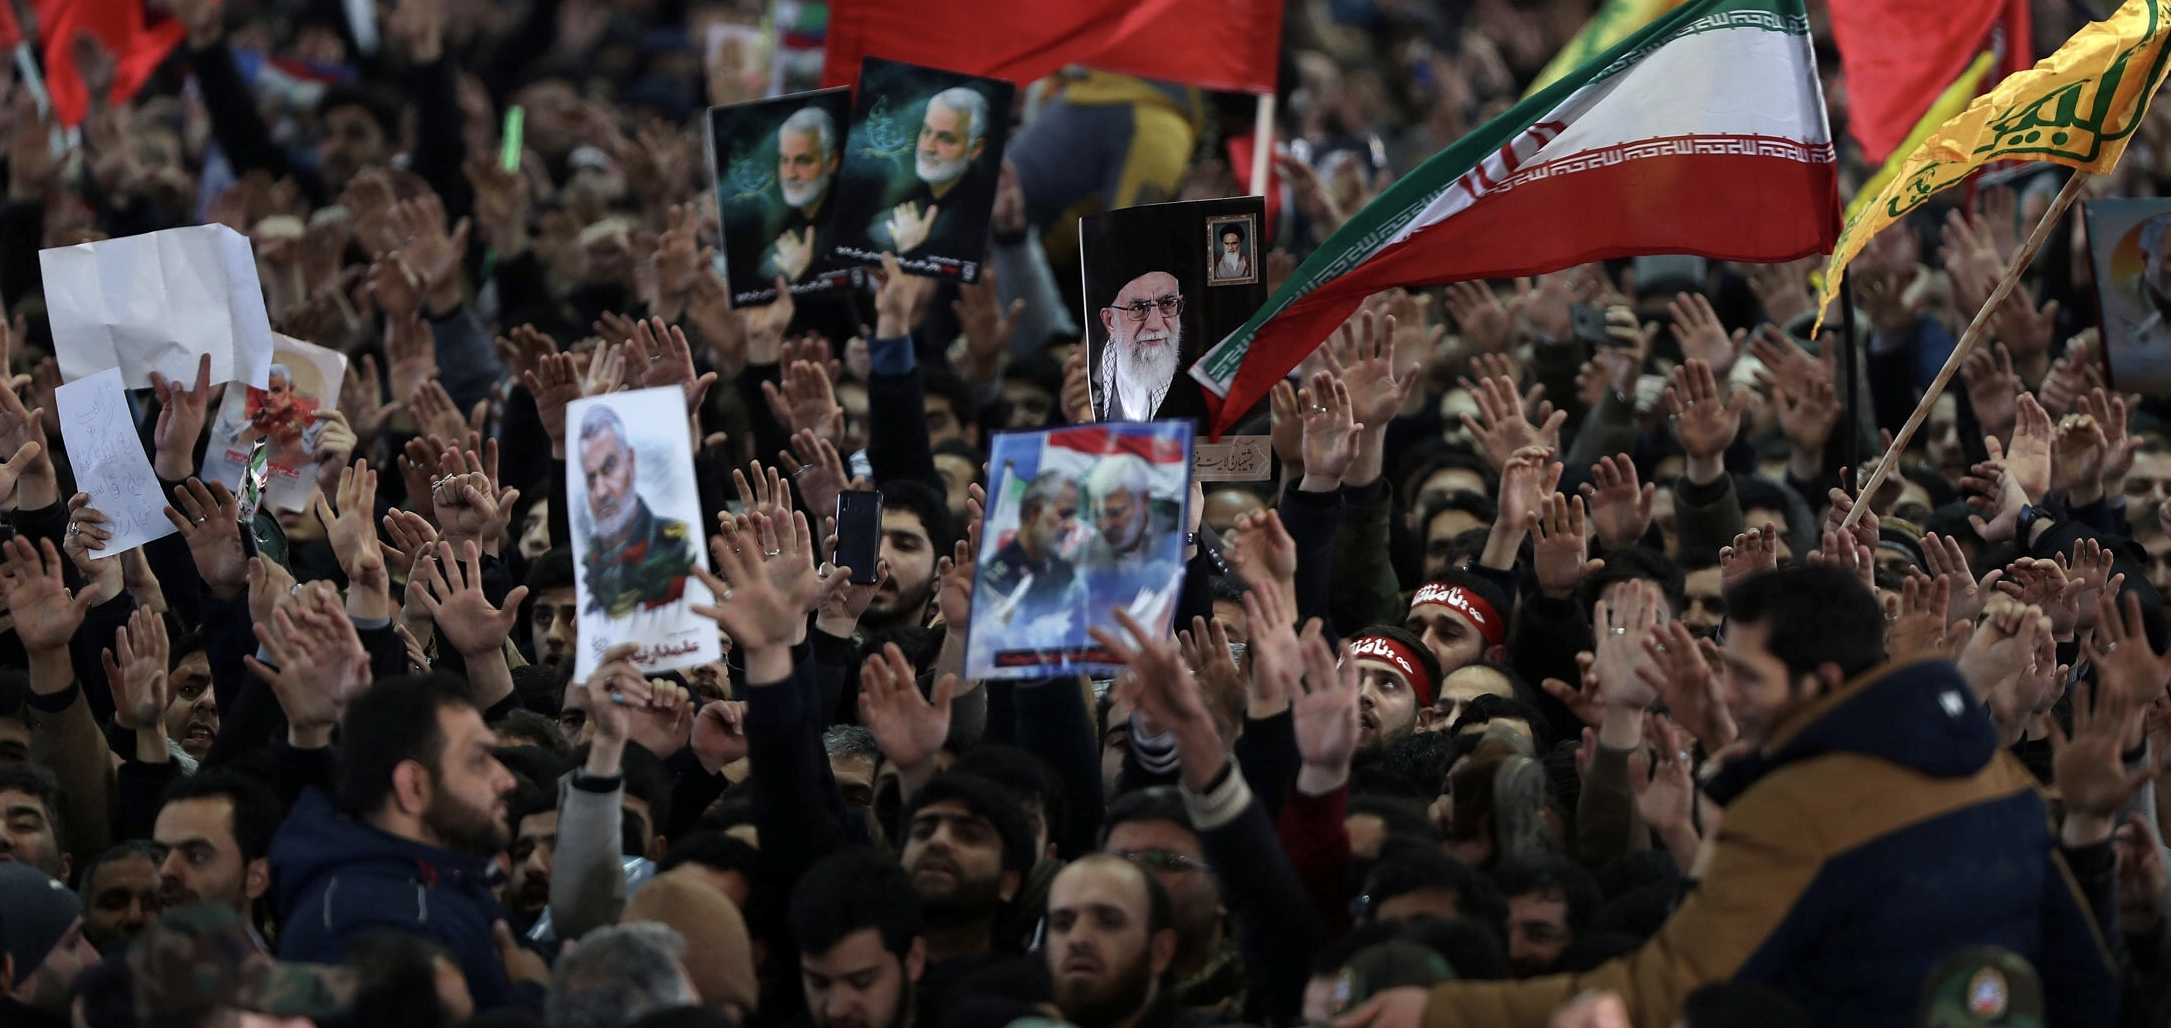 Iranian people carry pictures of Iran's Supreme Leader Ayatollah Ali Khamenei and Qassem Soleimani during a funeral for Iranian Major-General Qassem Soleimani, head of the elite Quds Force, and Iraqi militia commander Abu Mahdi al-Muhandis, who were killed in an air strike at Baghdad airport, in Tehran, Iran January 6, 2020. Official Khamenei website/Handout via REUTERS